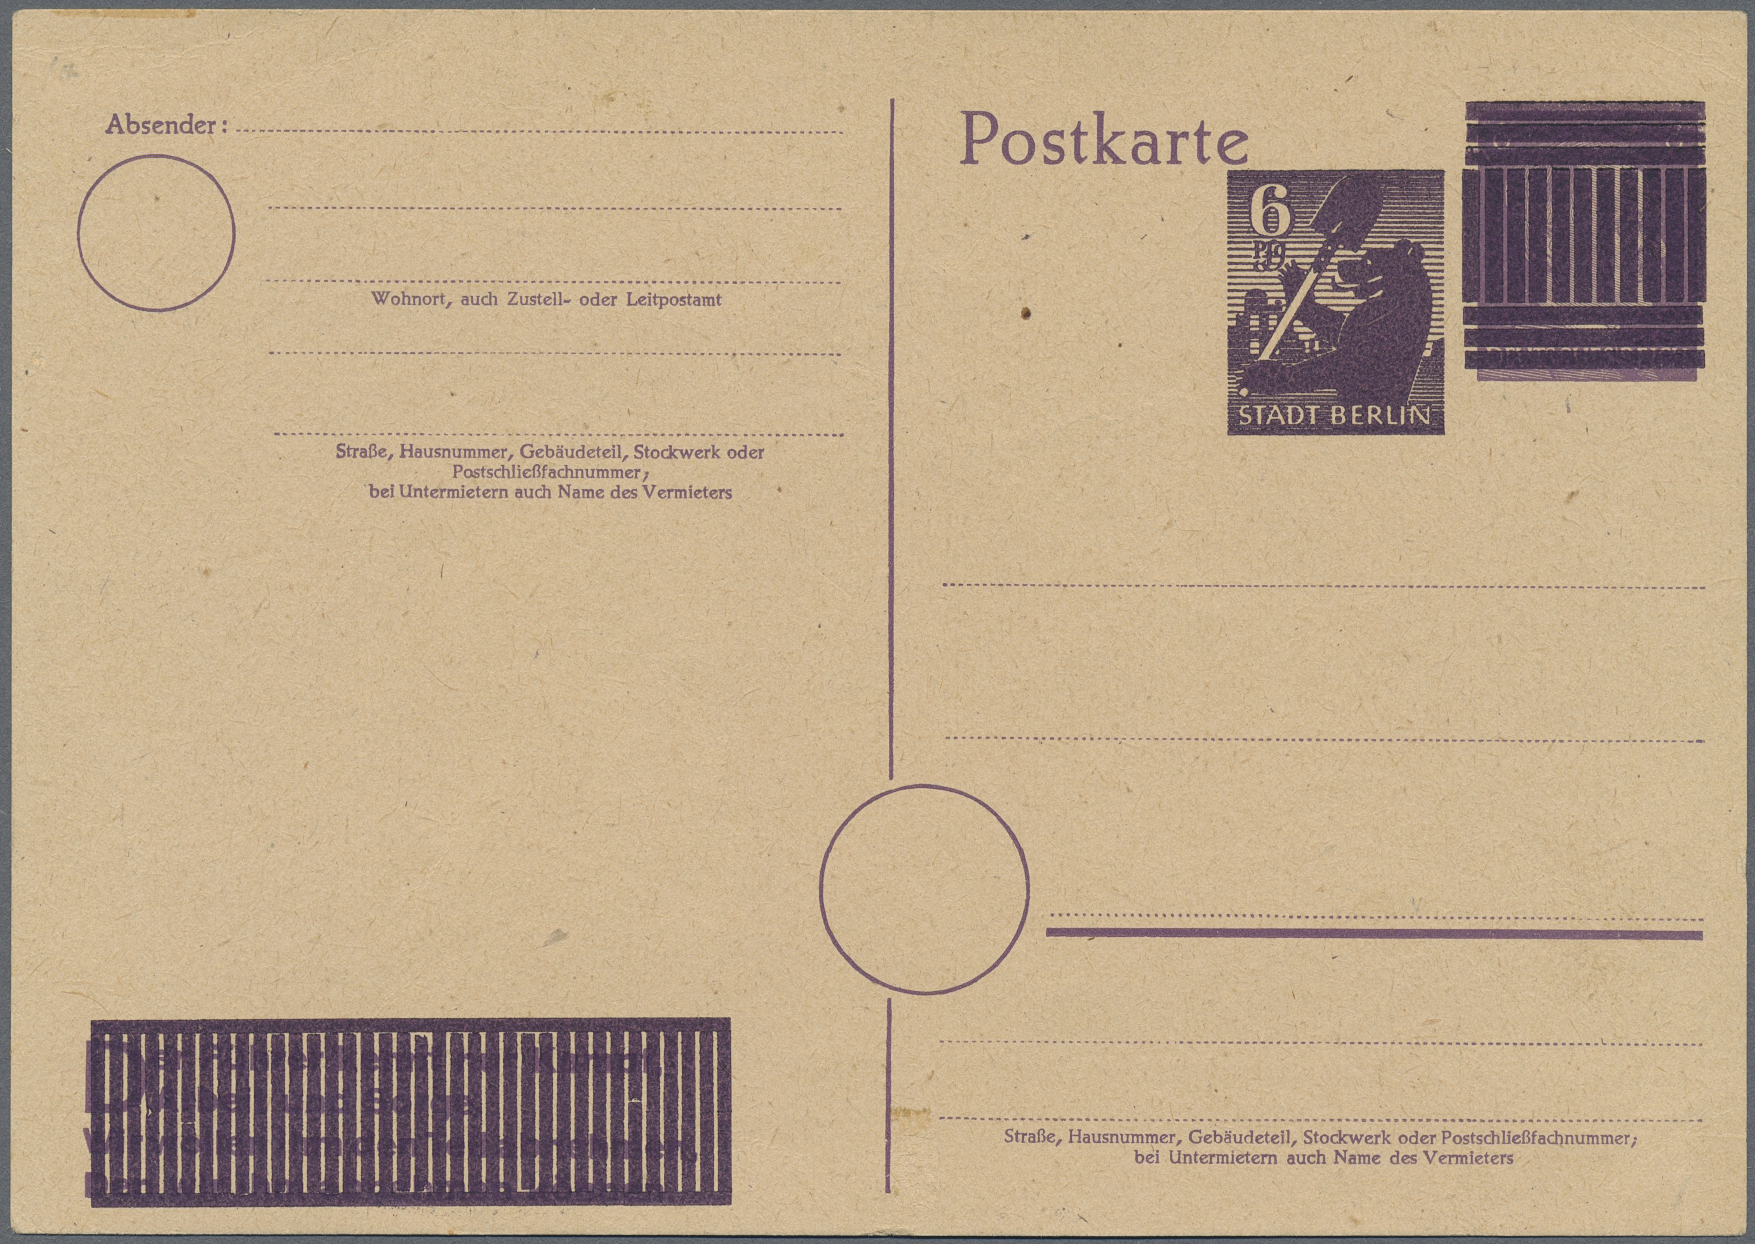 Lot 20172 - Sowjetische Zone - Ganzsachen  -  Auktionshaus Christoph Gärtner GmbH & Co. KG Auction #40 Germany, Picture Post Cards, Collections Overseas, Thematics